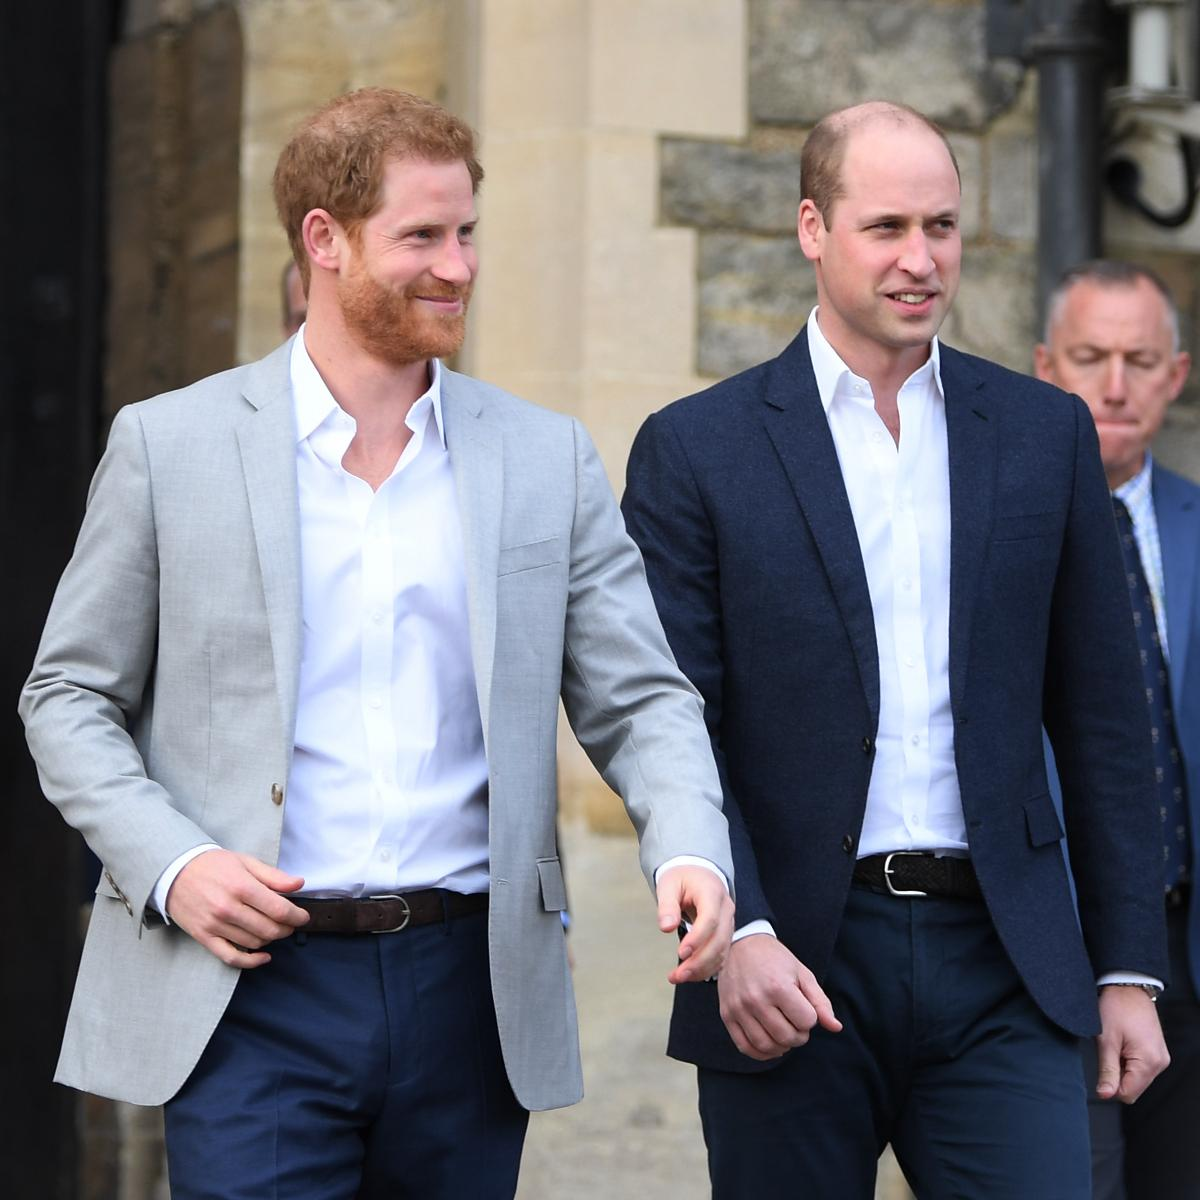 Prince Harry and Prince William clicked candidly amid a royal event